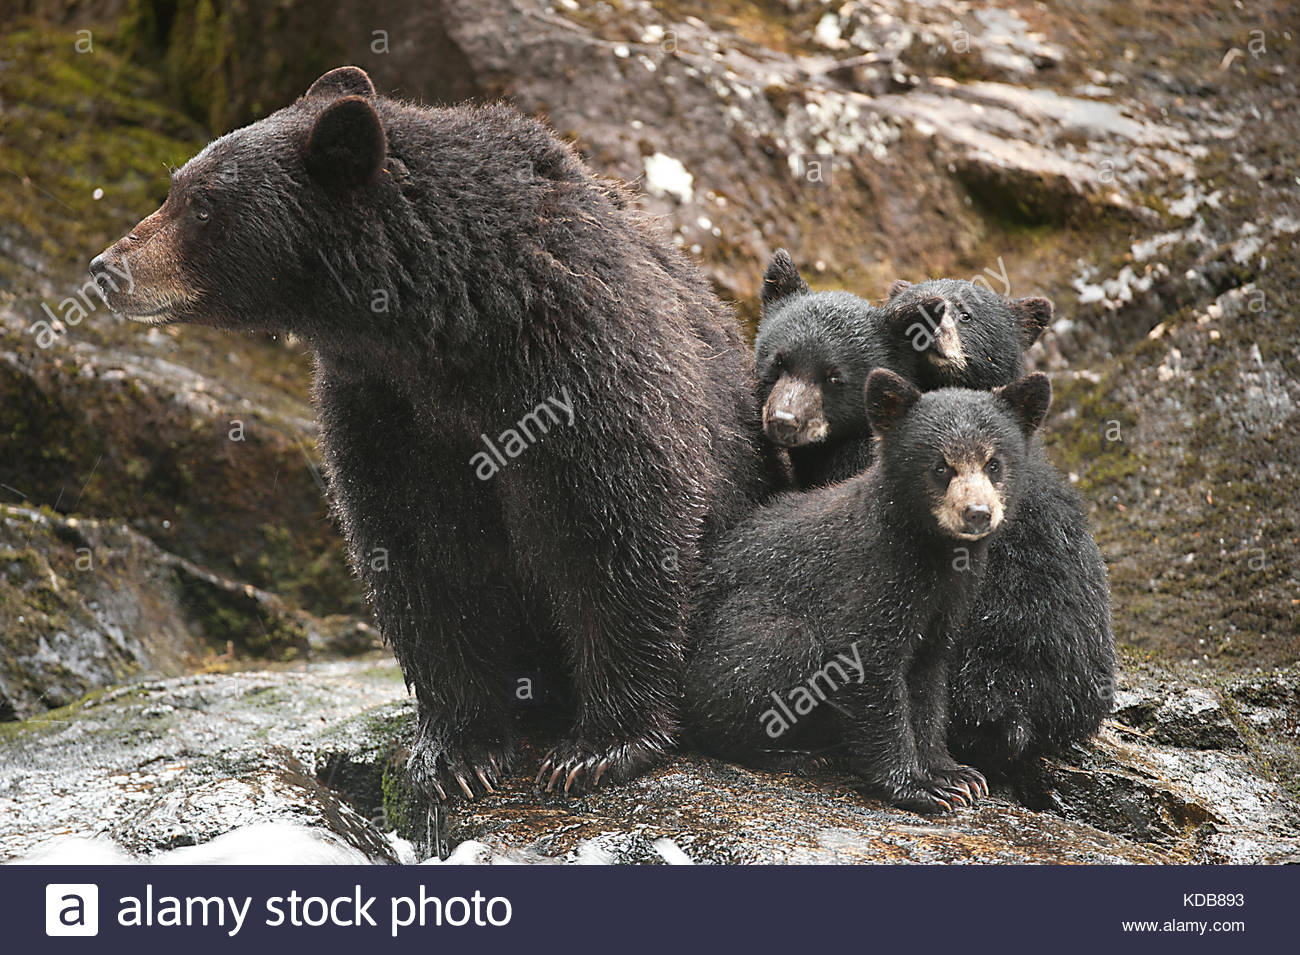 A mother black bear, Ursus americanus, and her three young cubs at a salmon-filled waterfall. - Stock Image